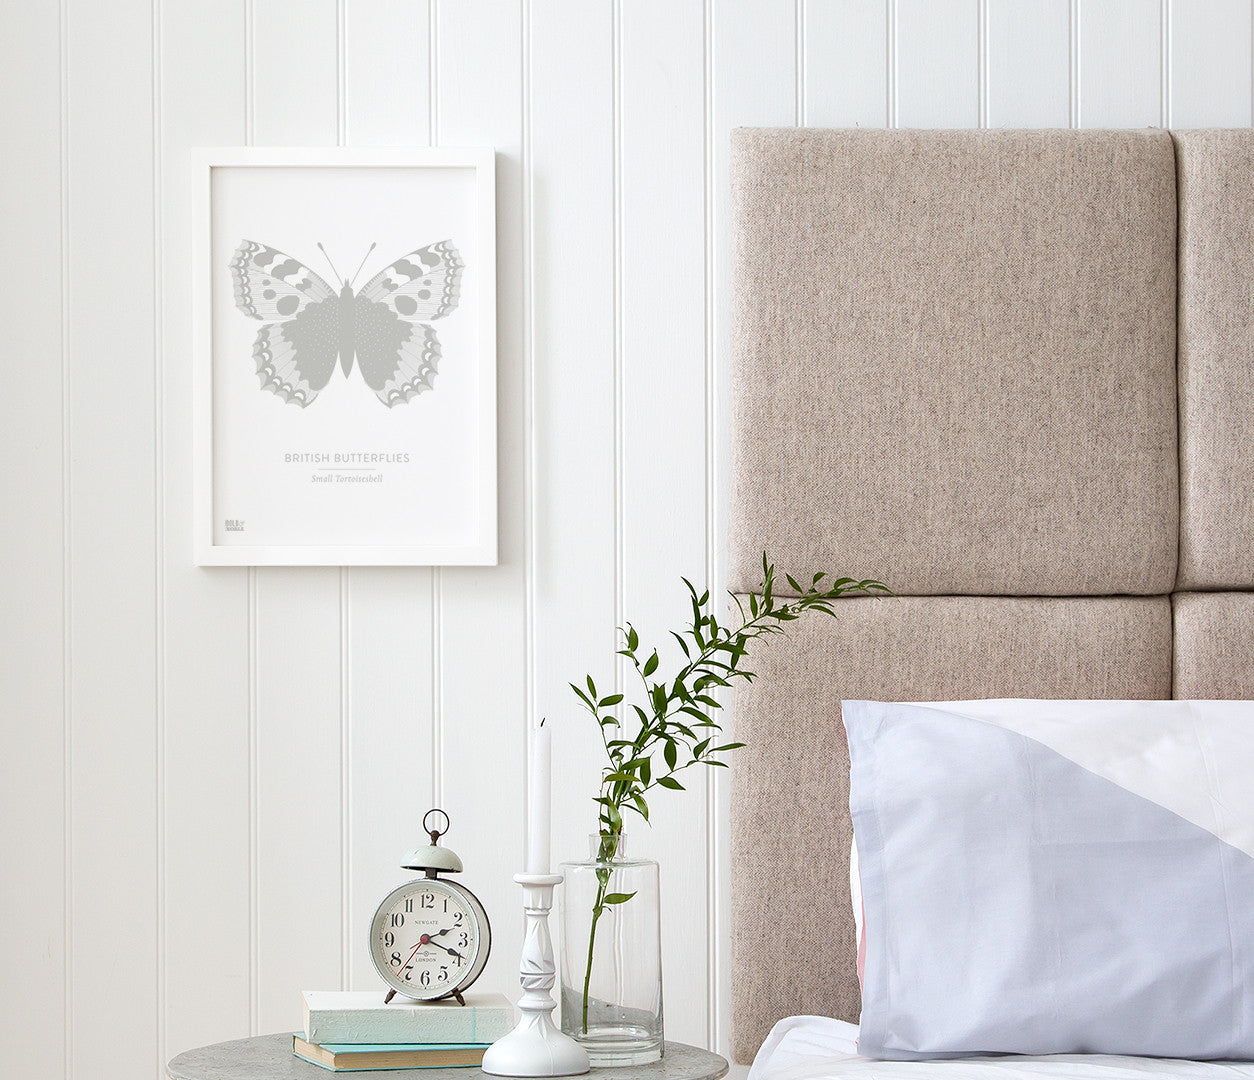 British Butterflies 'Small Tortoiseshell' Print in Putty Grey